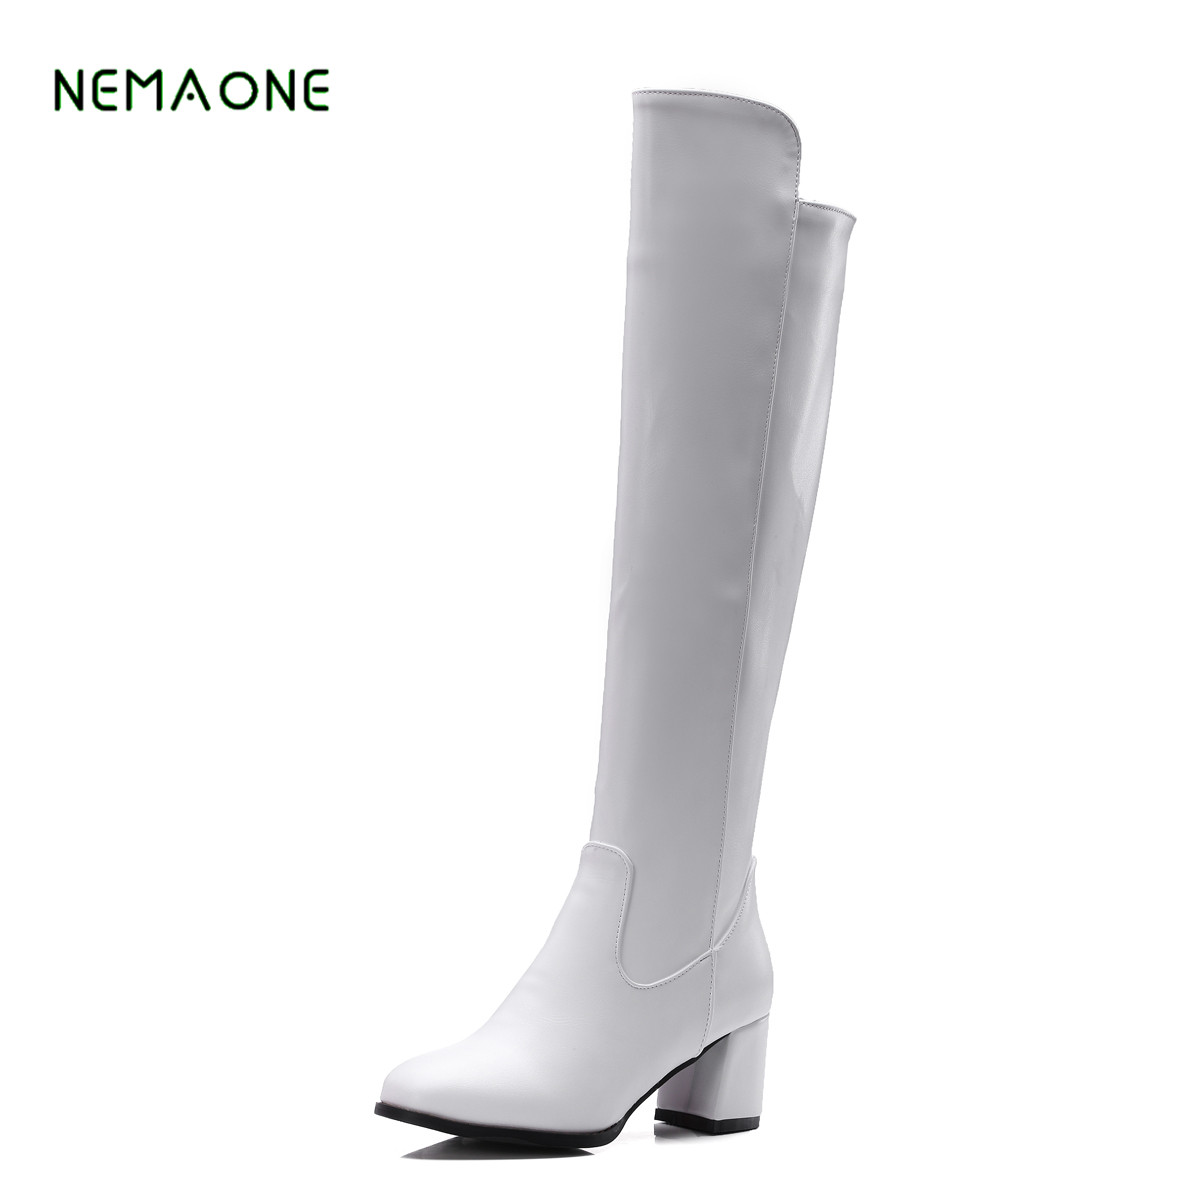 women winter boots stretch fabric fashion high heels women s boots elegant over the knee long boots winter boots NEMAONE Winter Women Boots Stretch Fabric Over the Knee Boots Square heel Thigh High Boots Ladies Long Boots